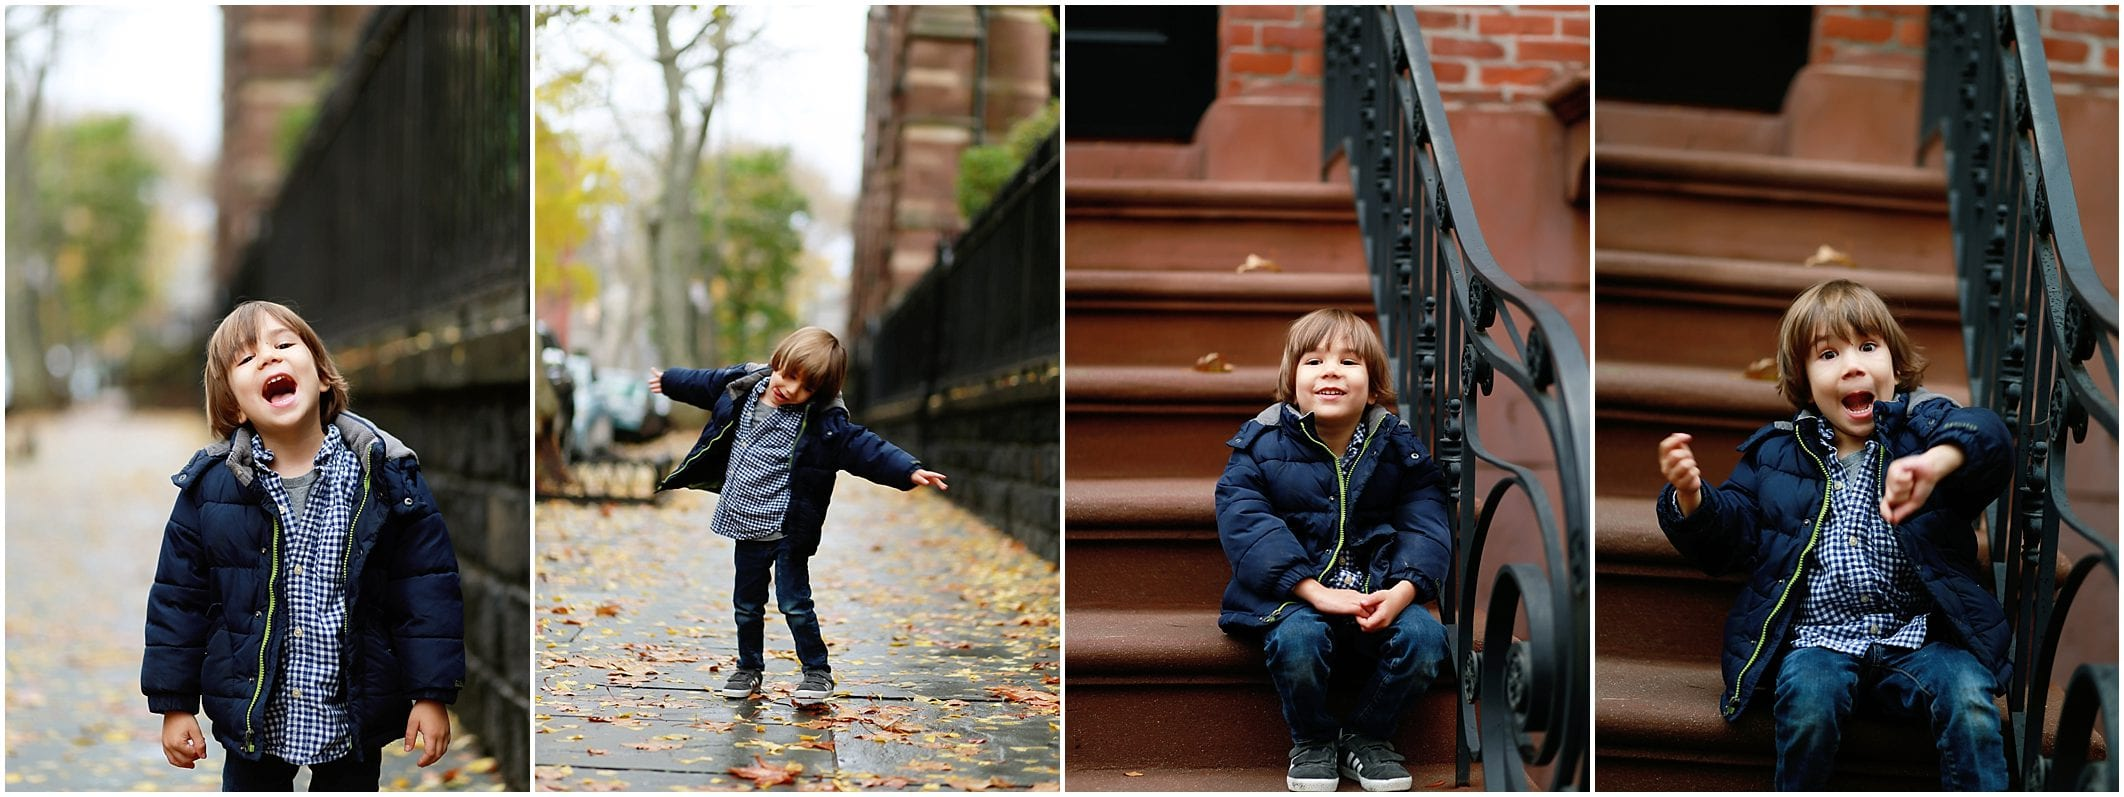 Cobble Hill Brooklyn Photographer .Children of New York: Helena Woods Destination Family Newborn Children's Portraiture shares her favorite sessions and kids in New York City. Locations featured: Central Park Gantry Plaza State Park Long Island Prospect Park Brooklyn